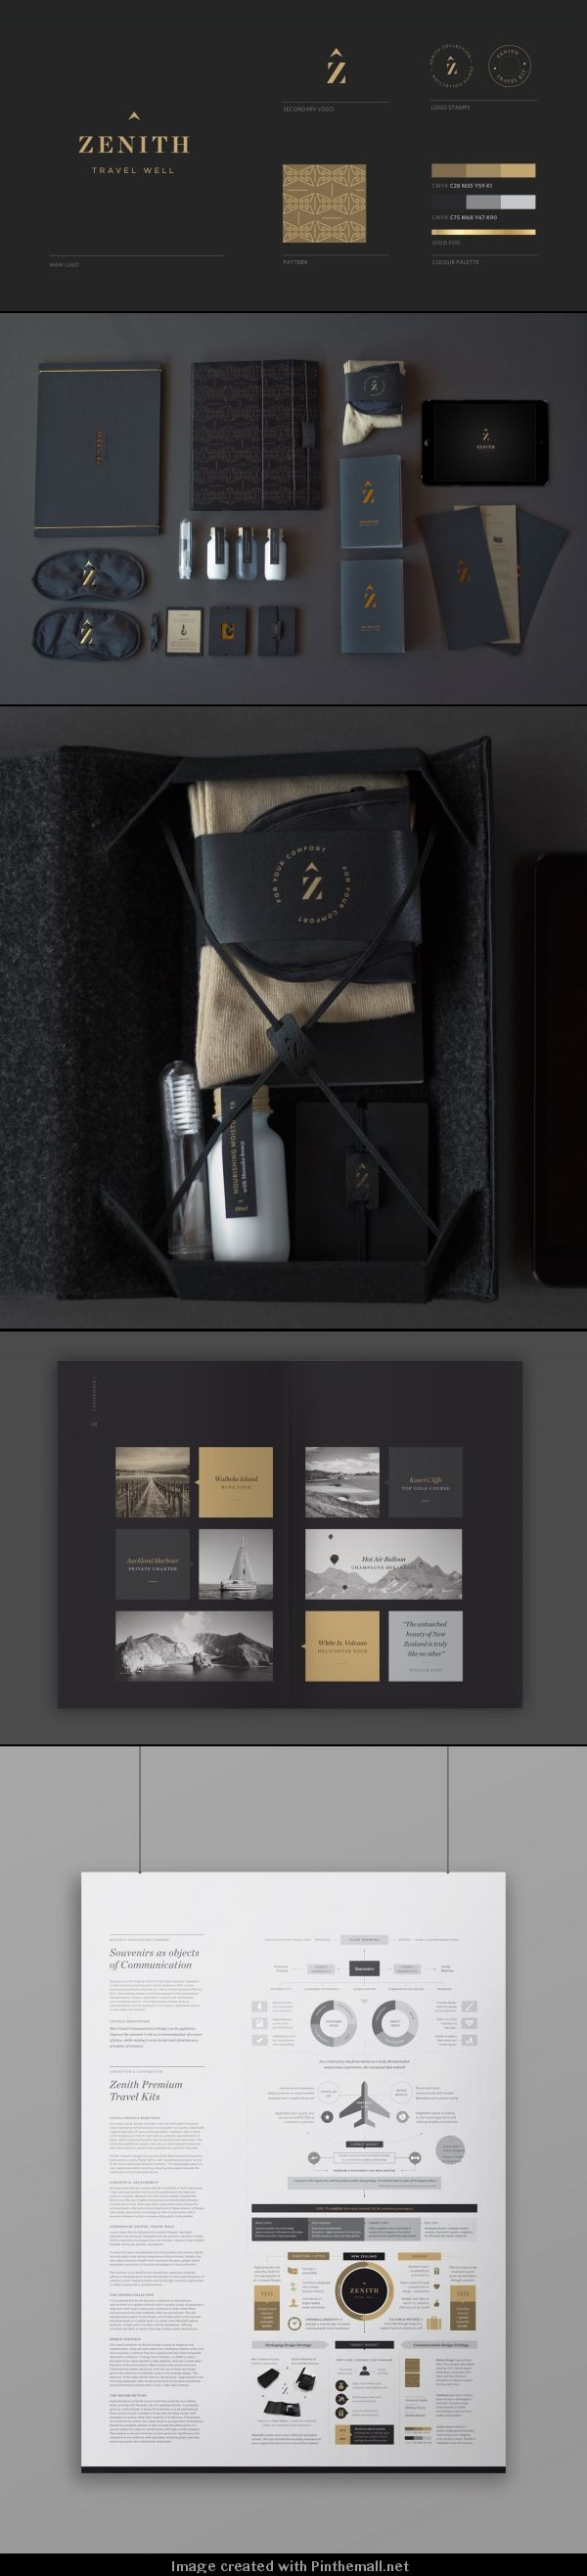 Zenith Premium Travel Kits